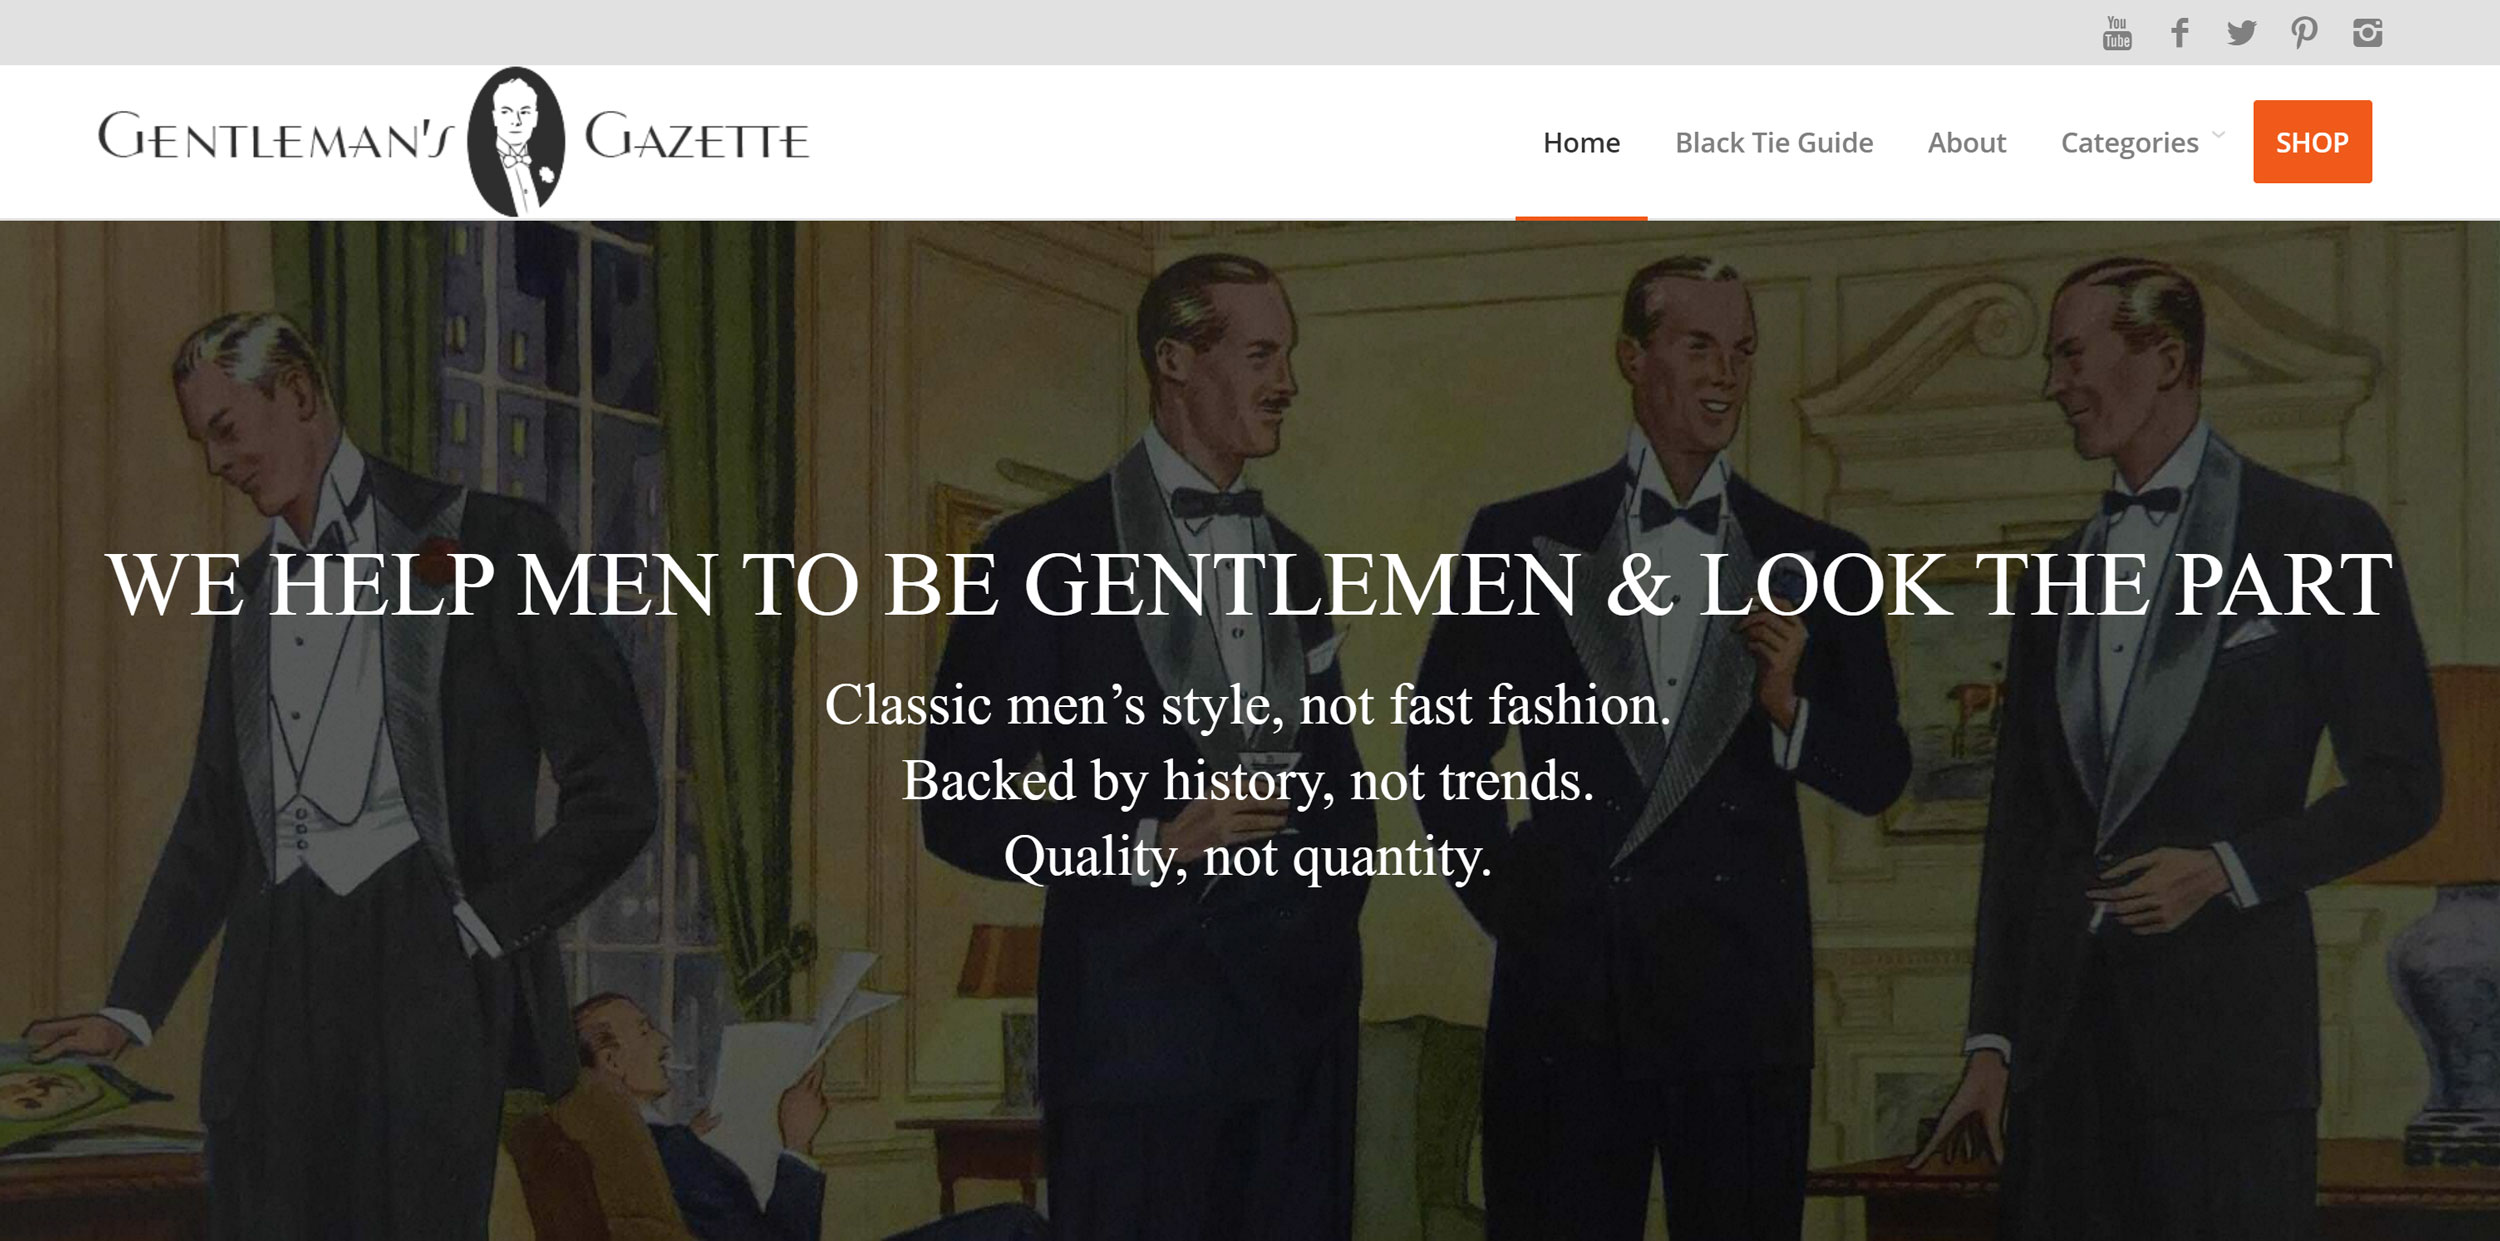 Gentlemen's Gazette